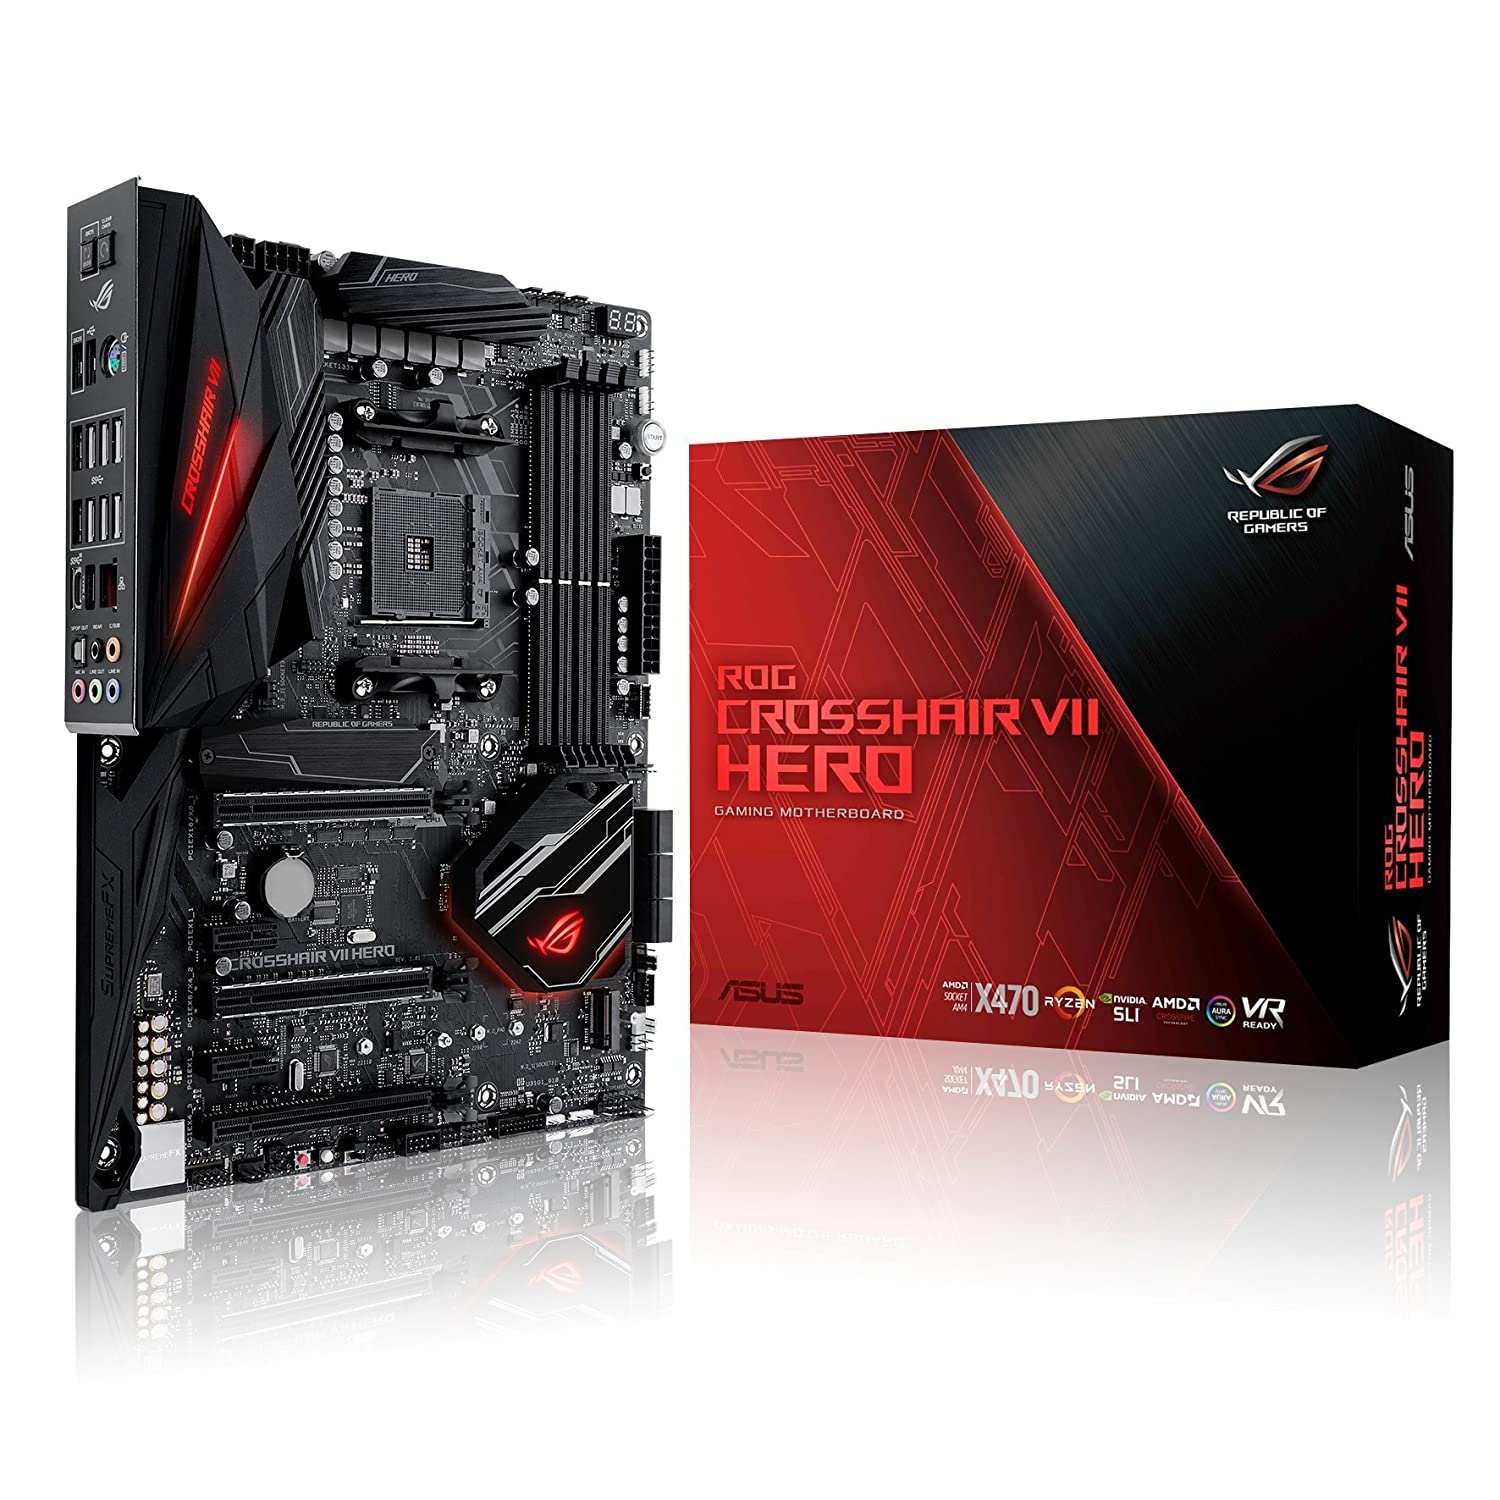 Asus ROG Crosshair VII Hero Gaming Mainboard AM4 Amazon puter & Zubehör